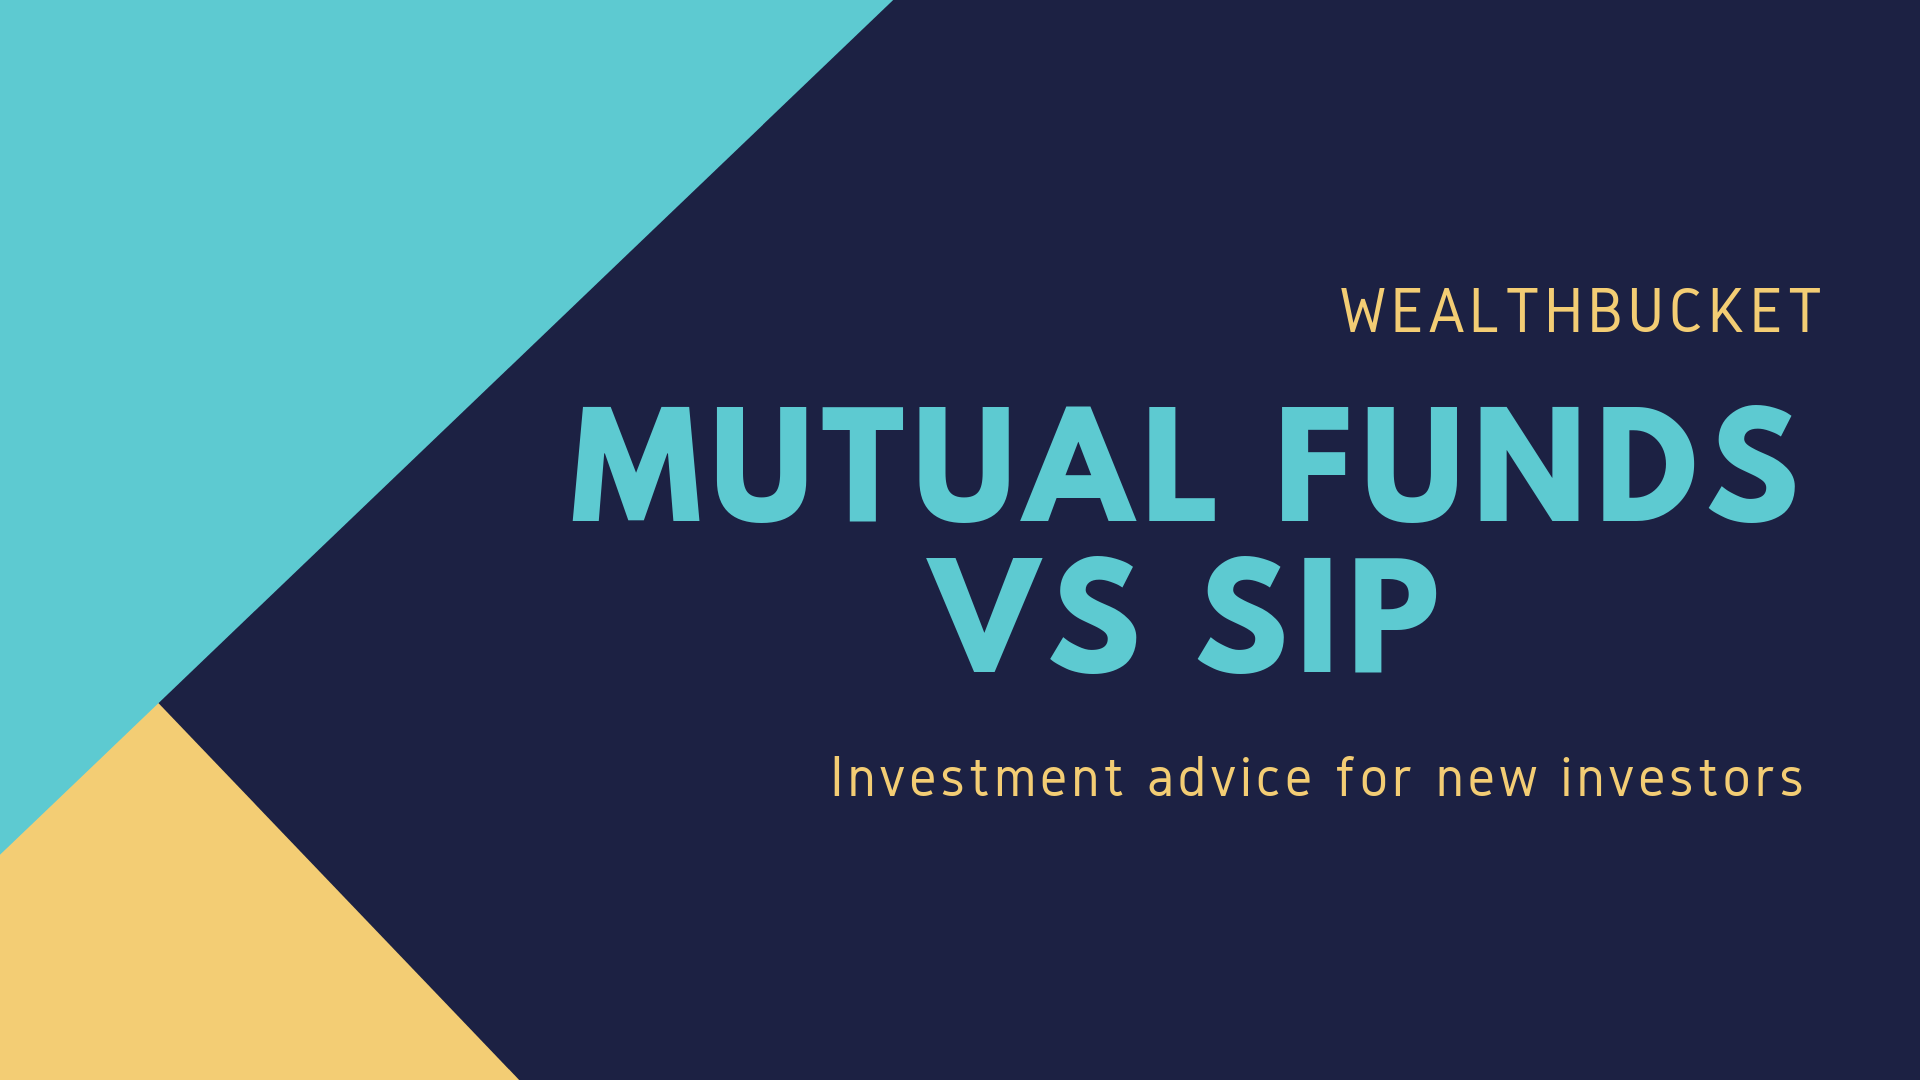 What Is Sip In Mutual Fund?